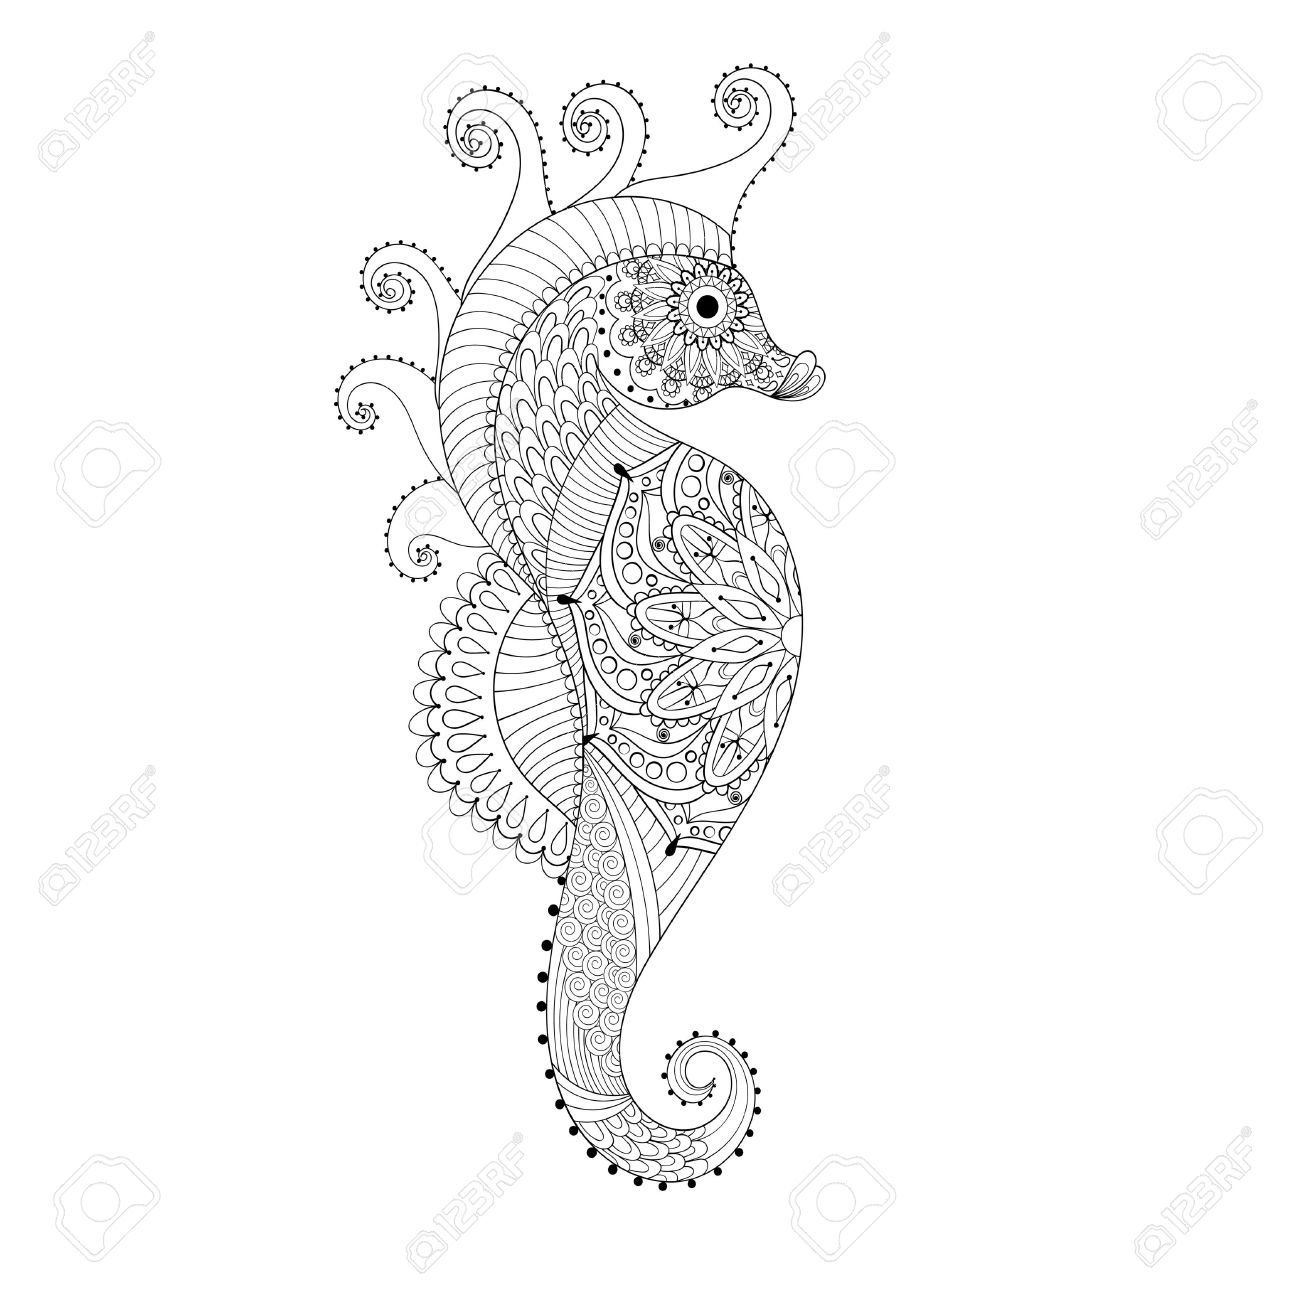 Hand Drawn Sea Horse For Adult Coloring Pages In Doodle Zentangle Tribal Style Mehndi